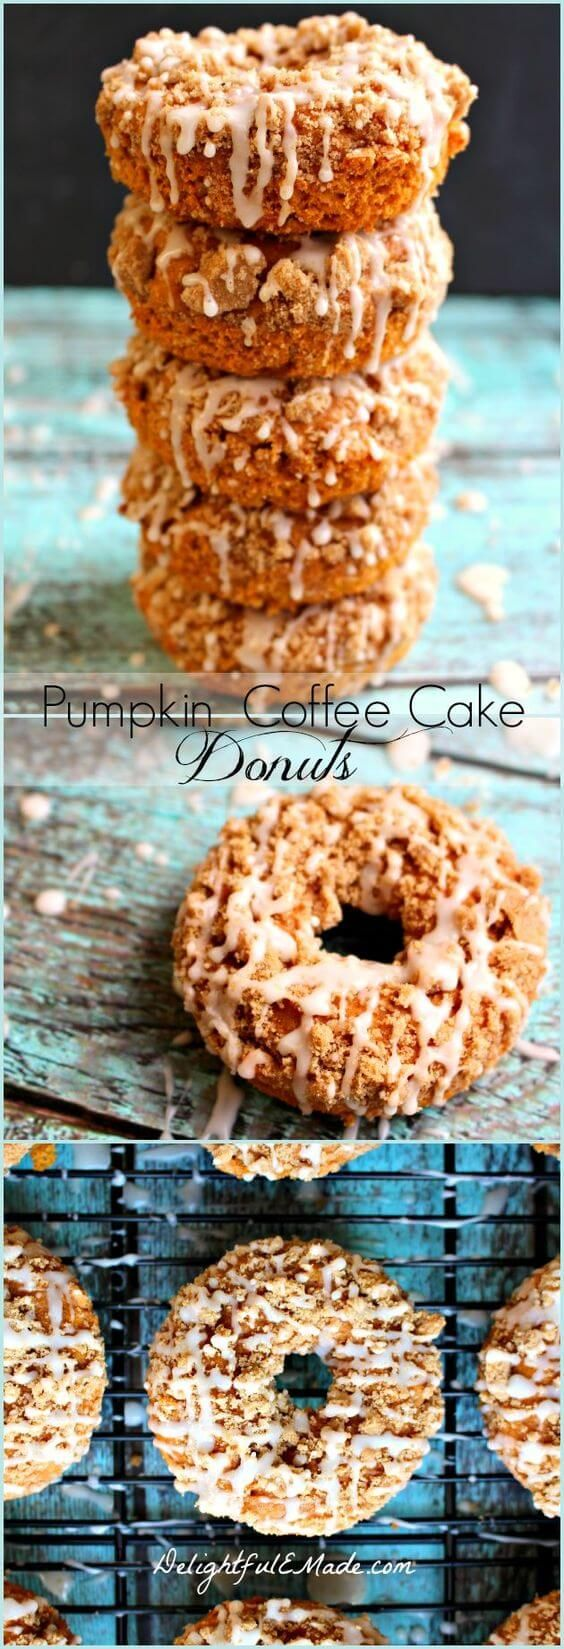 Pumpkin Coffee Cake Donuts Pumpkin coffee cakes